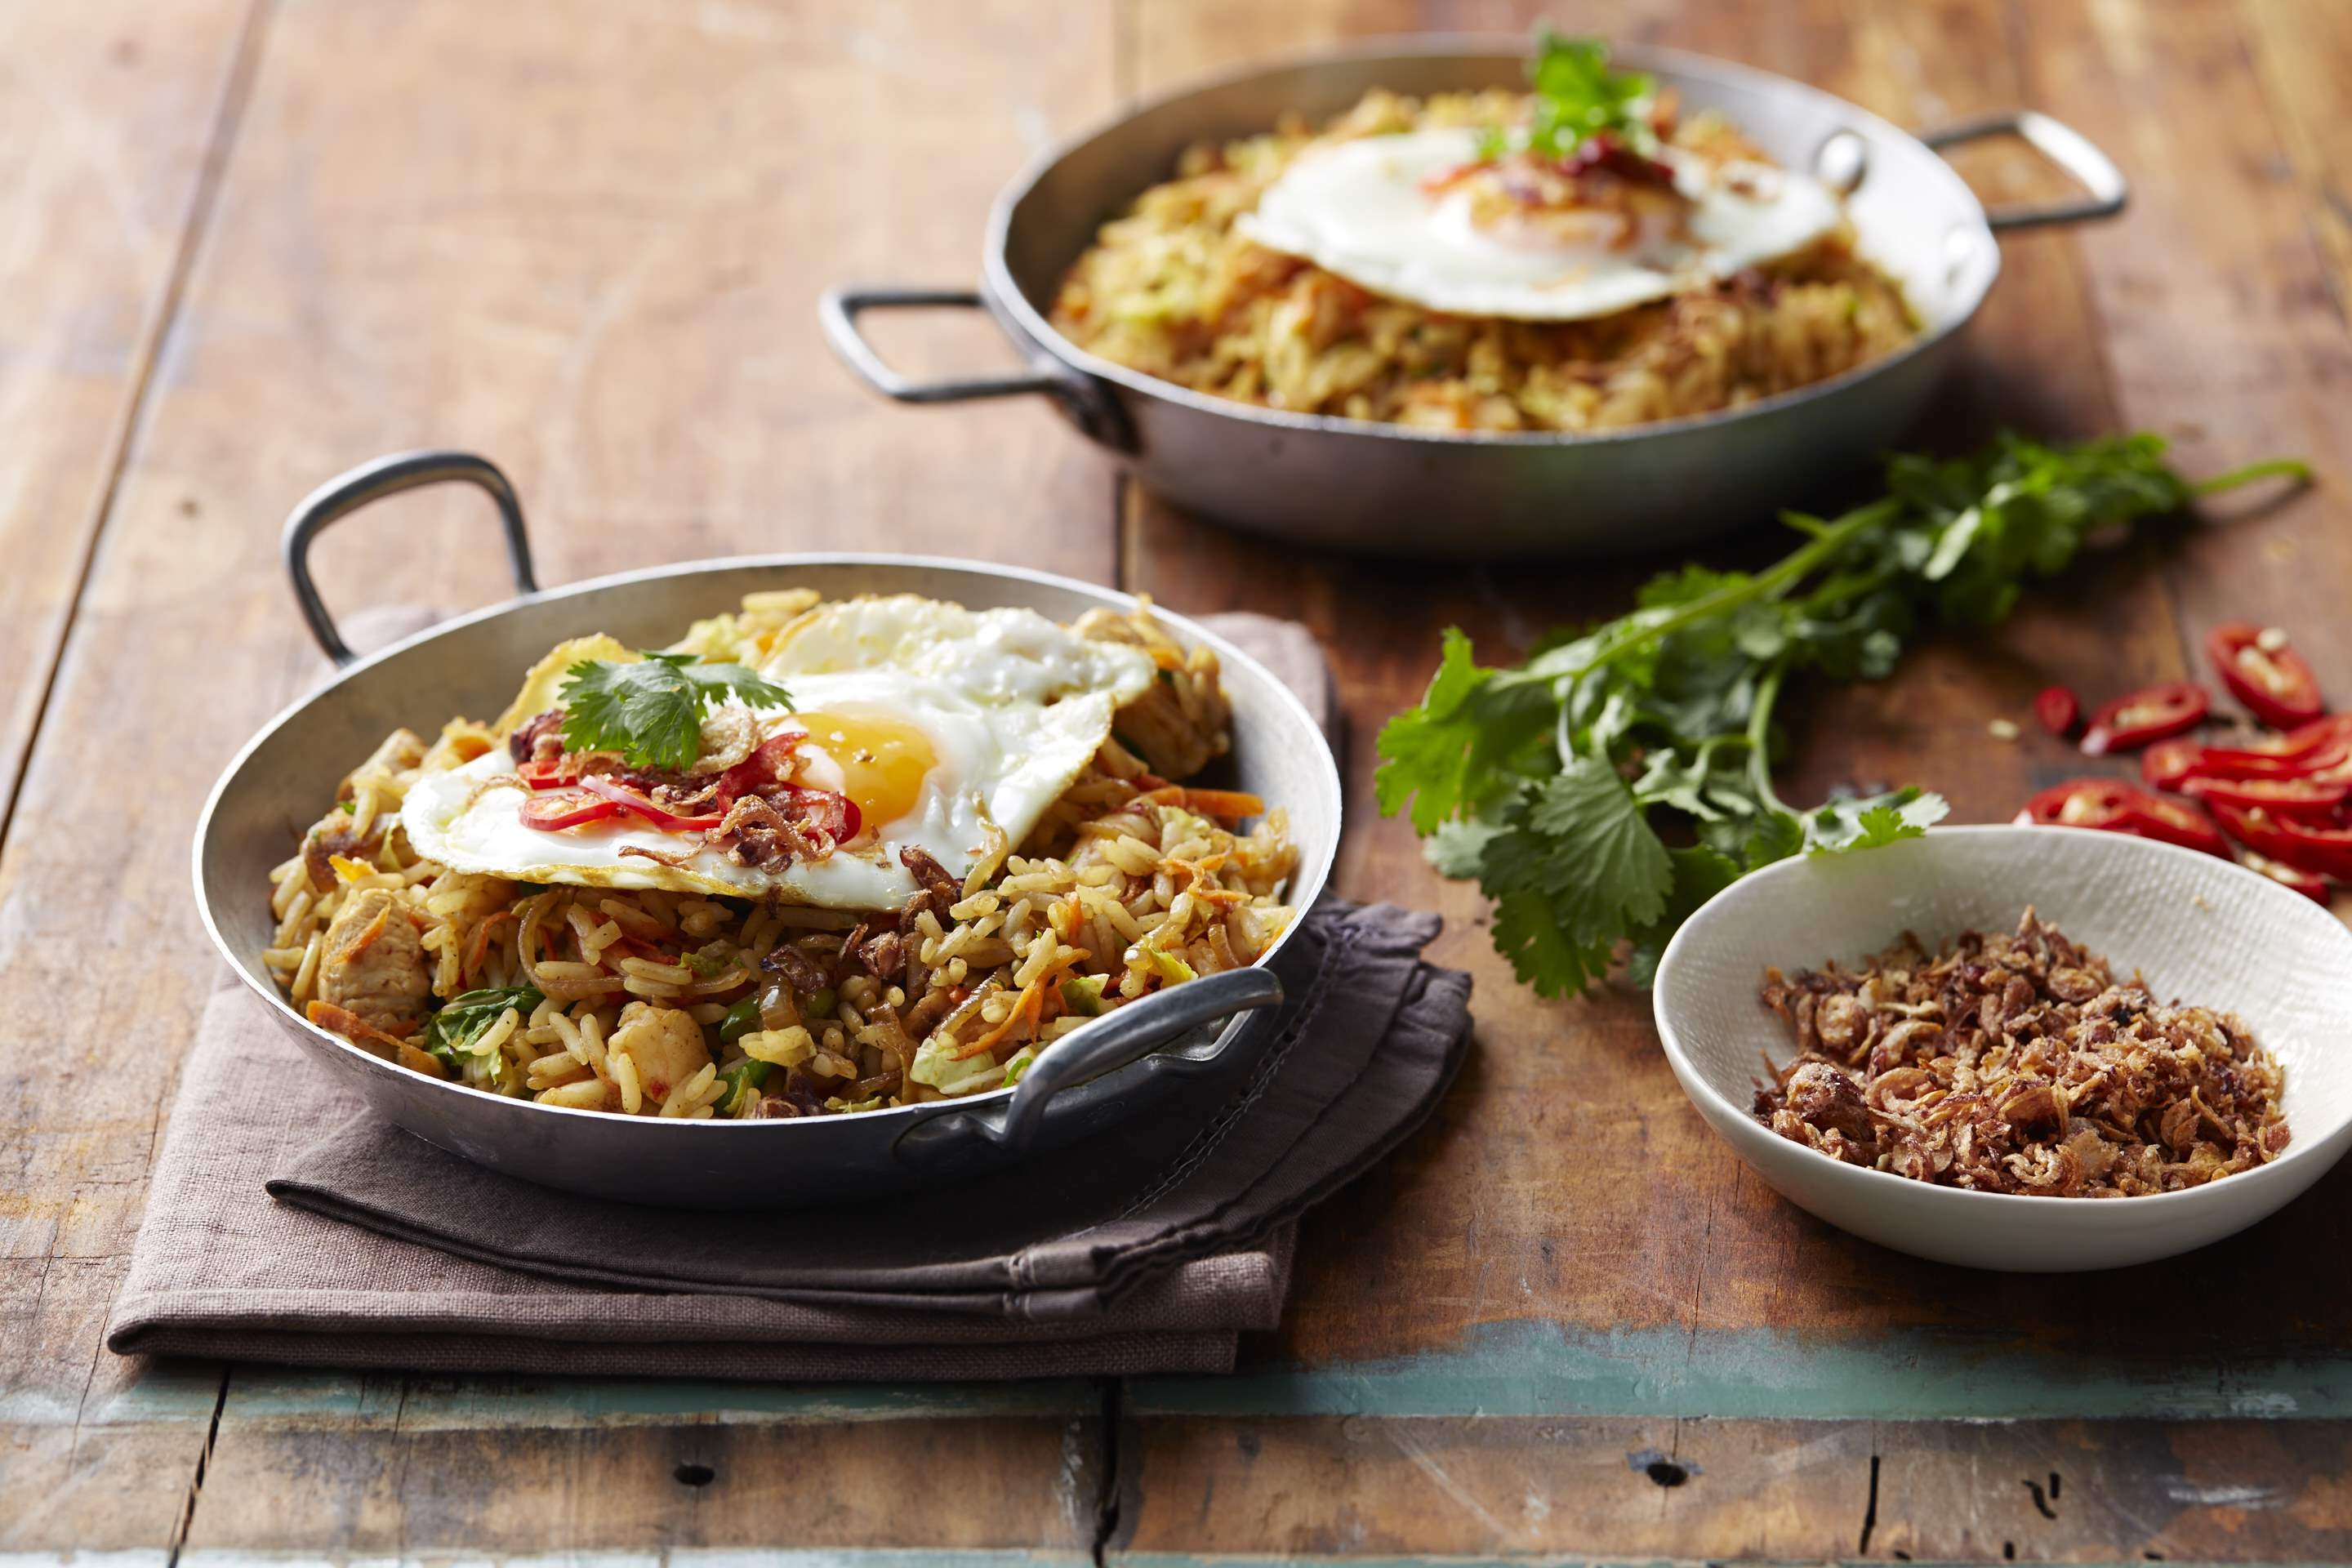 Nasi goreng rice topped with egg